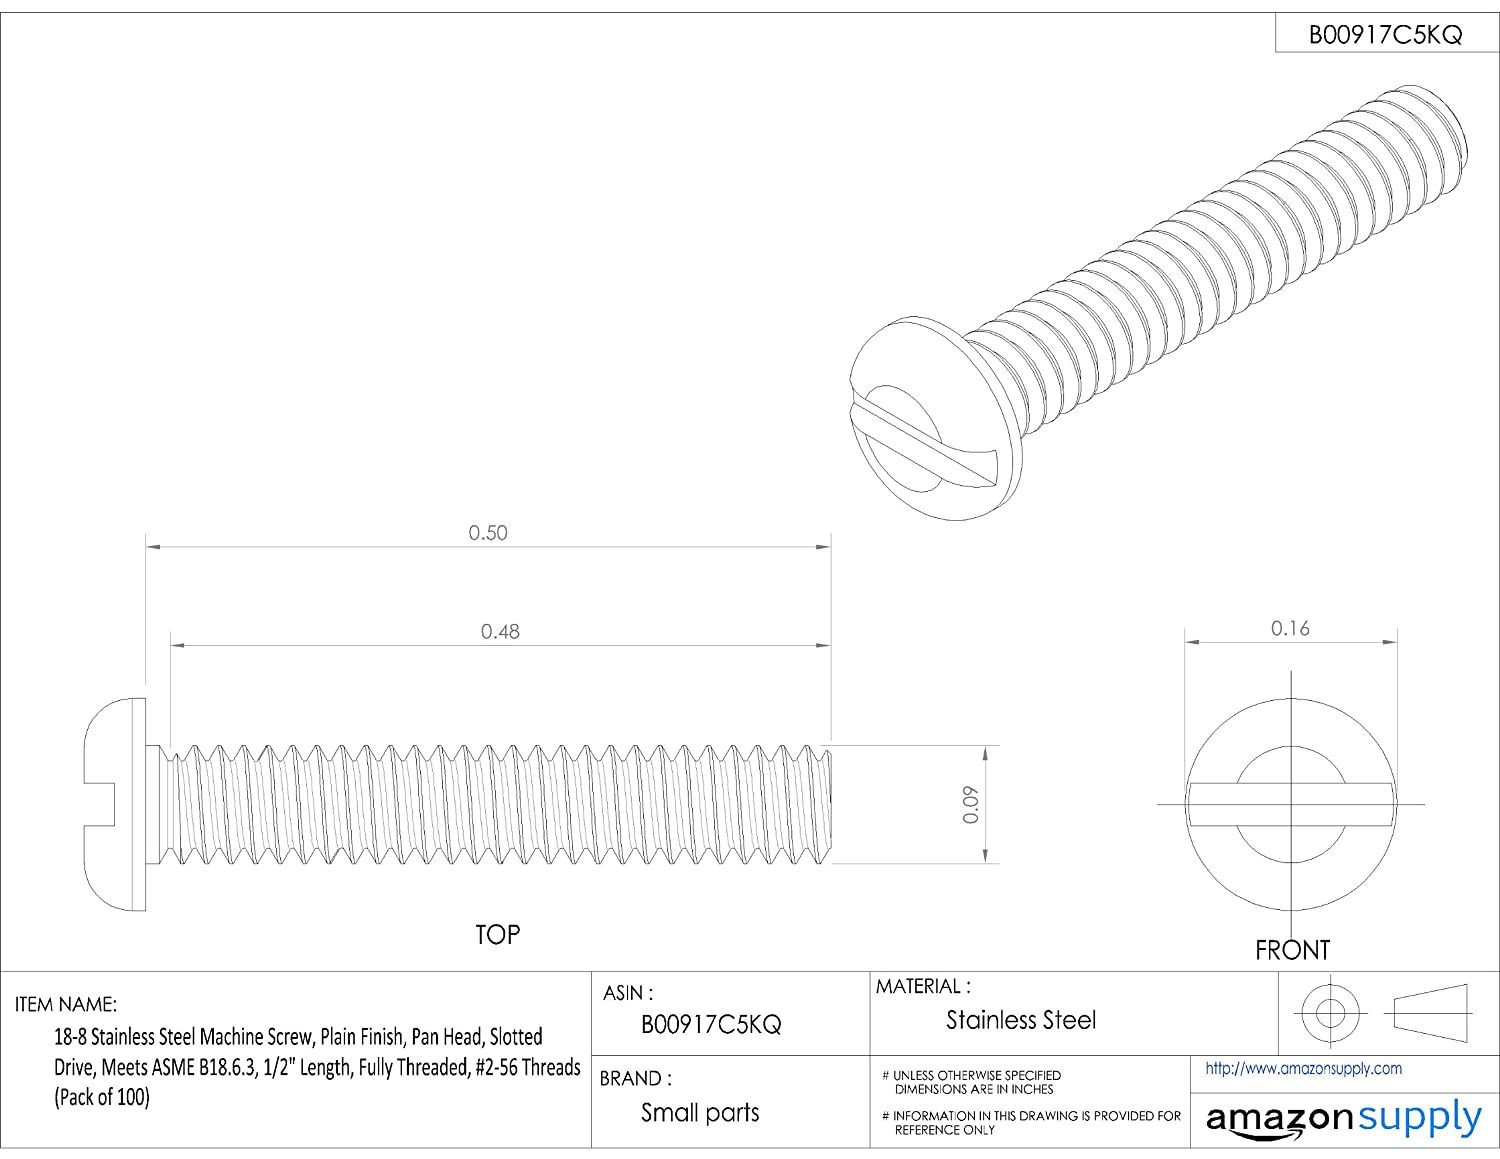 3//8 Length Fully Threaded 3//8 Length Small Parts Slotted Drive 18-8 Stainless Steel Machine Screw #0-80 Threads Pan Head Meets ASME B18.6.3 Pack of 100 Plain Finish